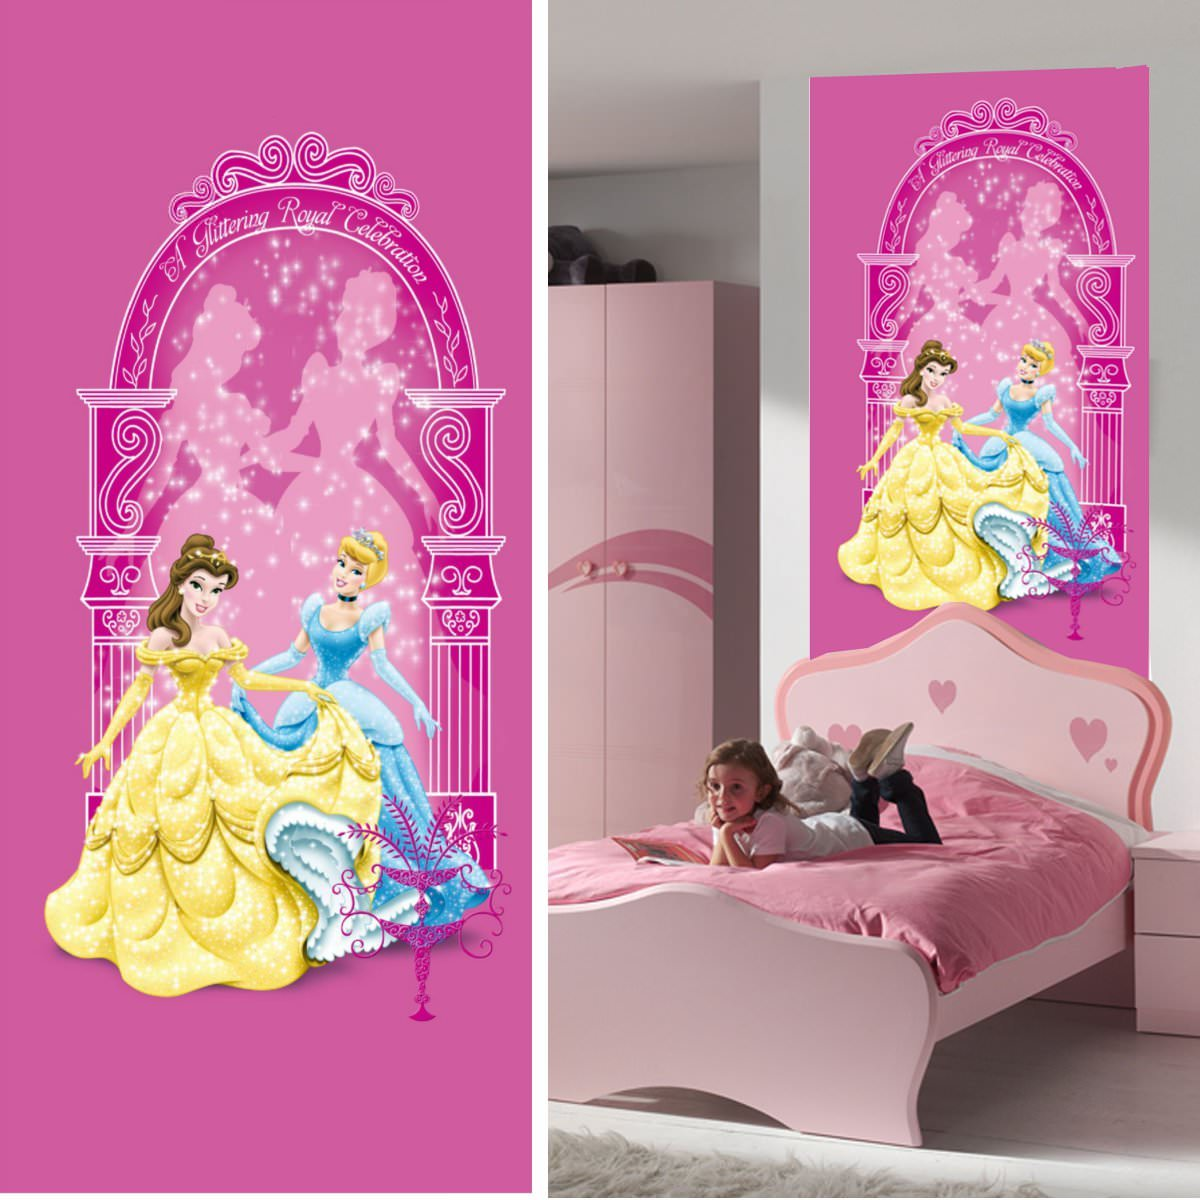 Dcoration princesse chambre fille chambre fille princesse valentine rose et lit voiture royal for Chambre princesse disney